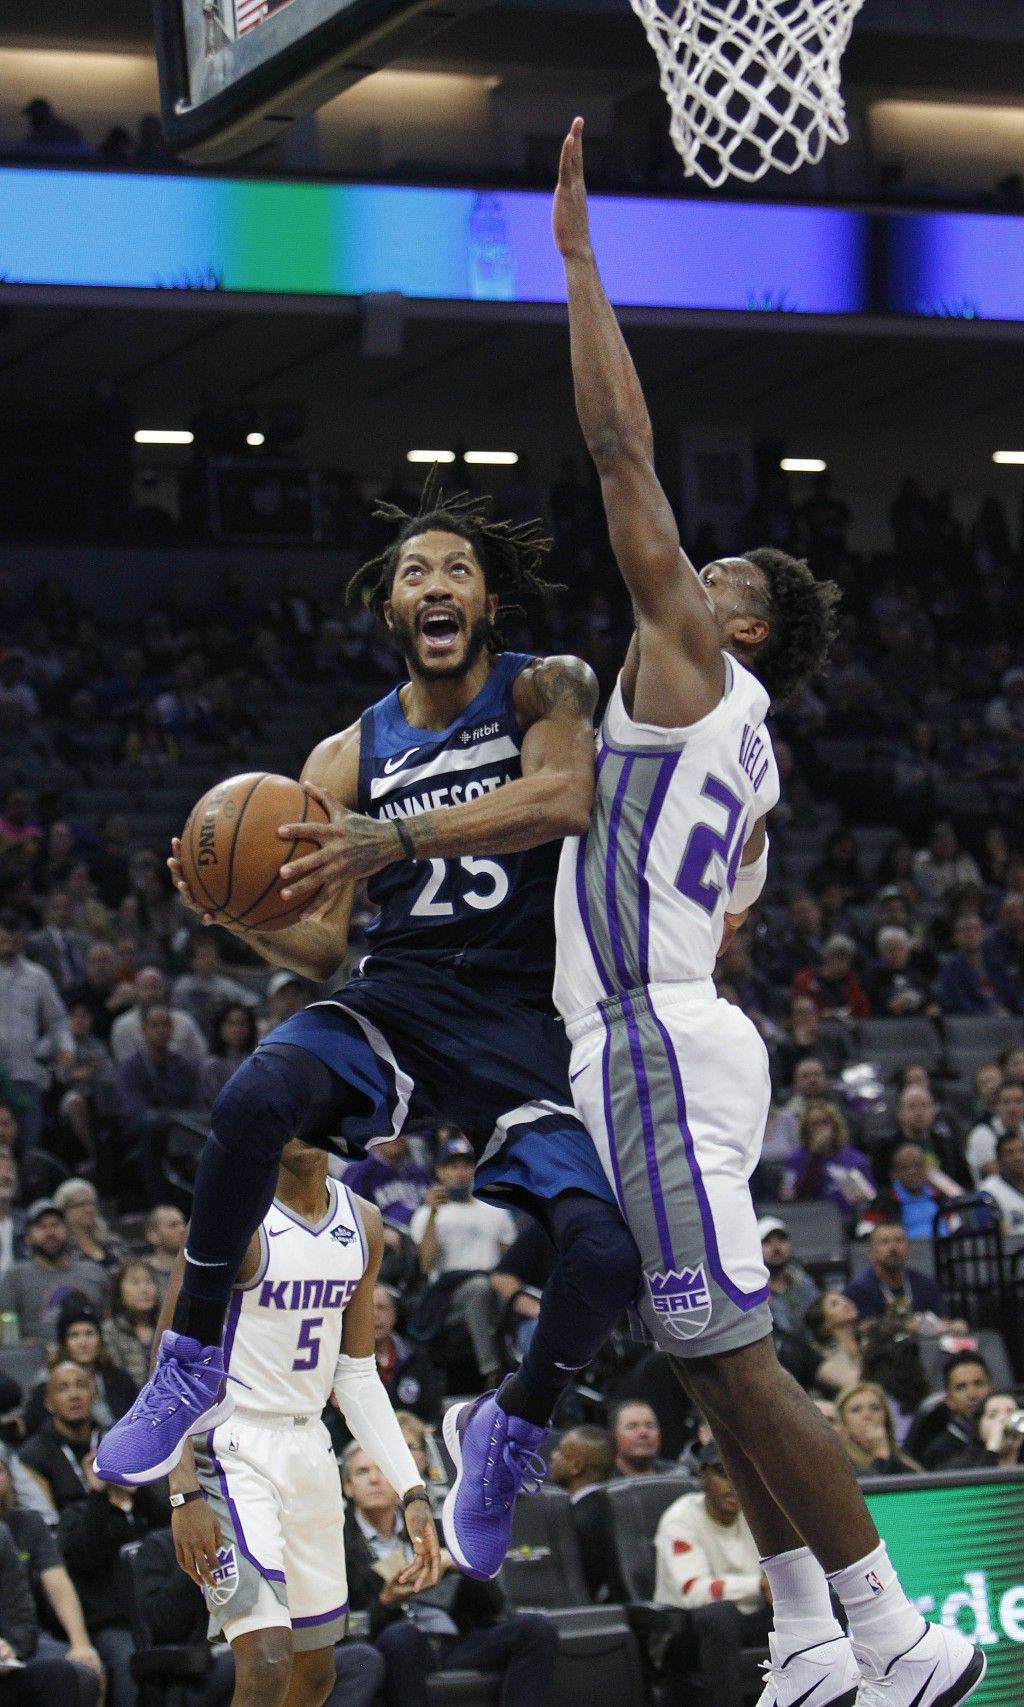 Minnesota Timberwolves guard Derrick Rose (25) drives to the basket against Sacramento Kings guard Buddy Hield (24) during the first half of an NBA ba